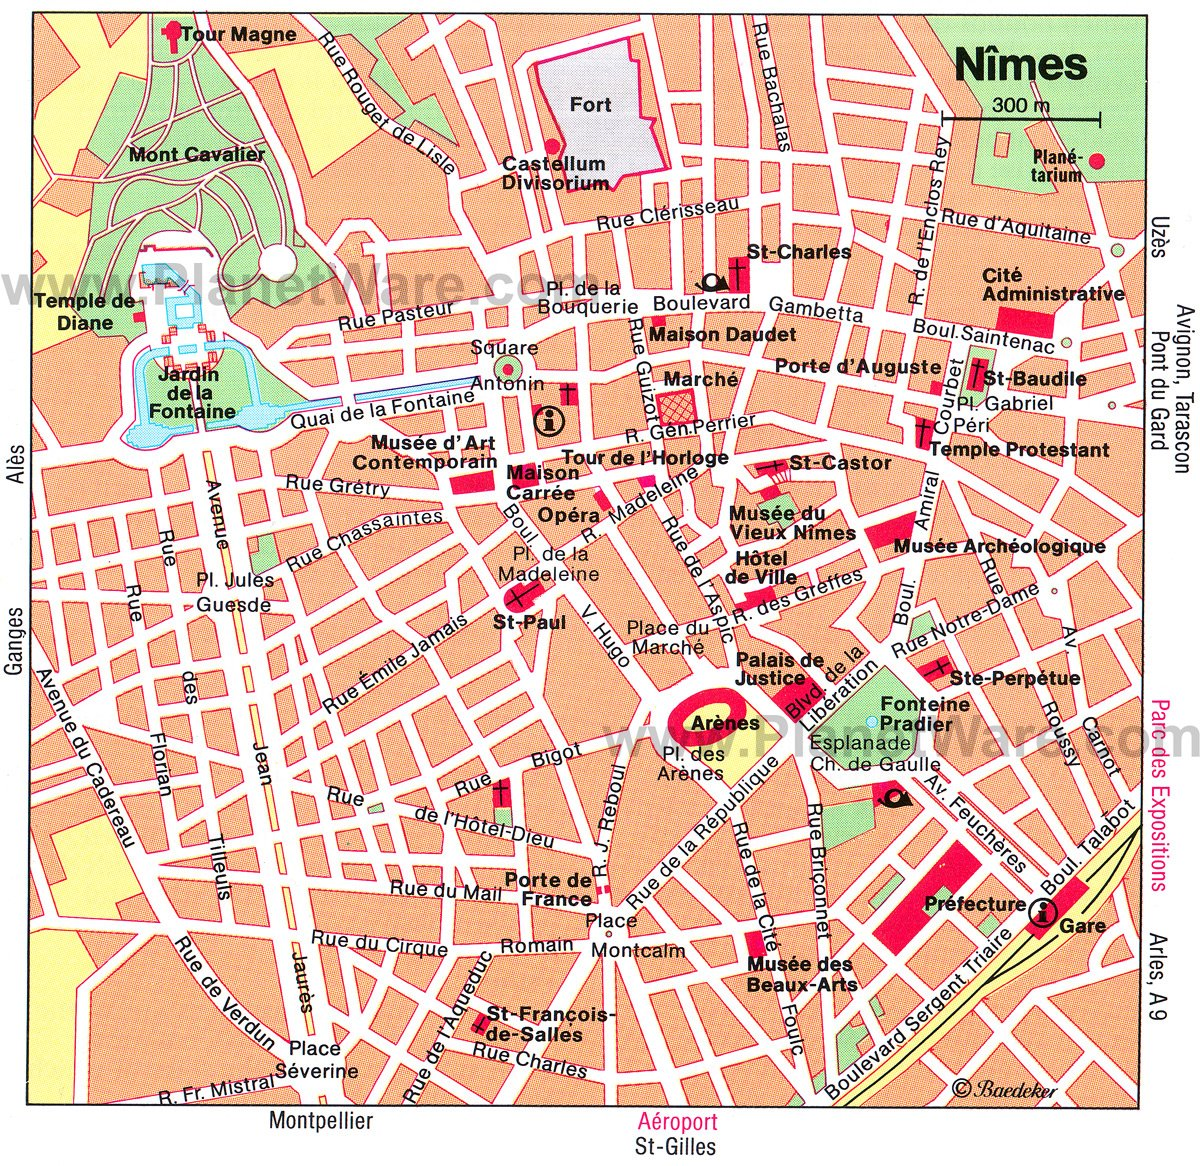 10 Top Rated Tourist Attractions In Nimes Planetware